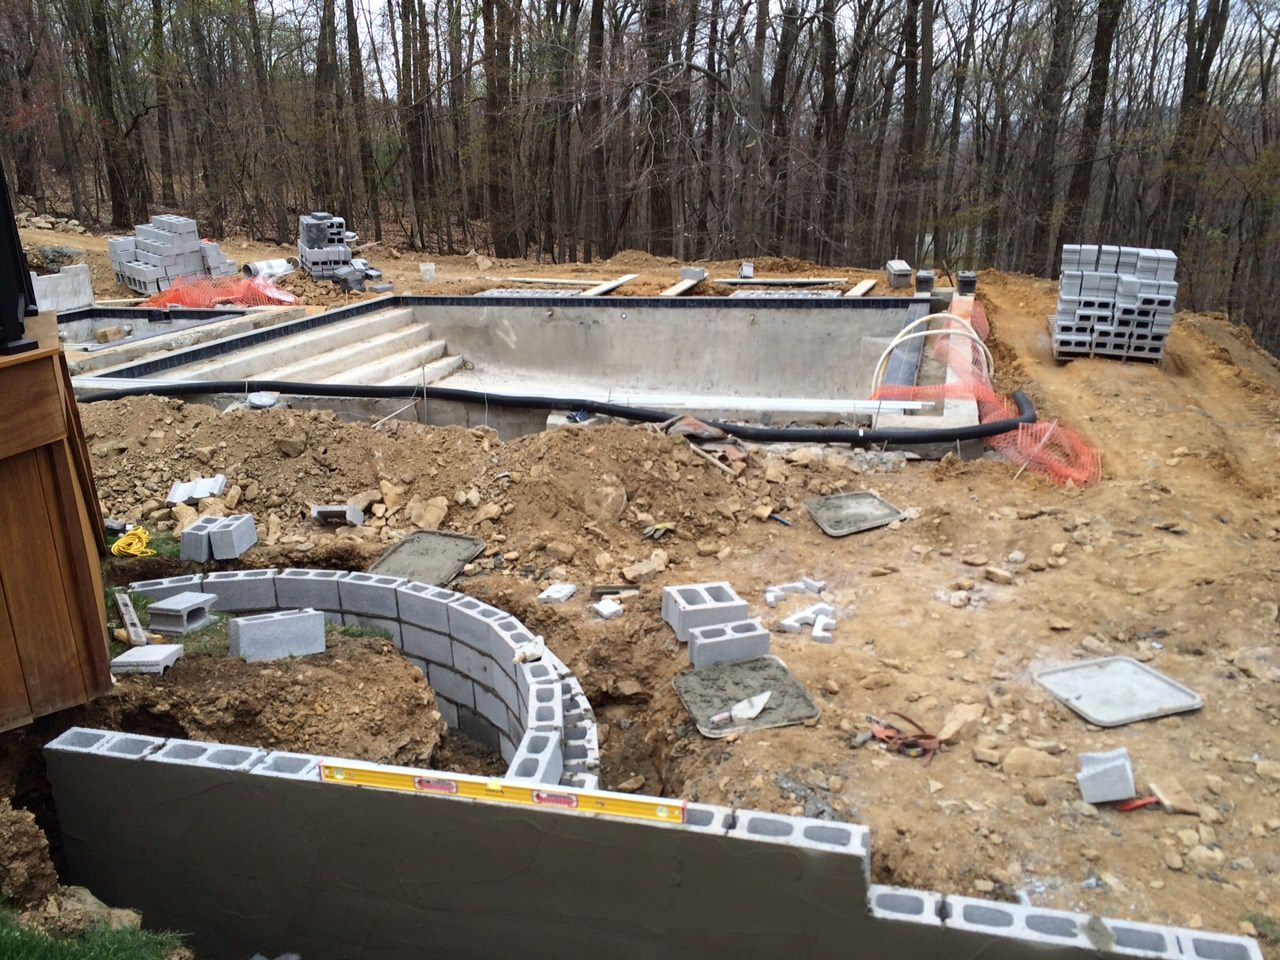 Once the gunite pool shell was in place, it was time to map out the rest of the surrounding features!